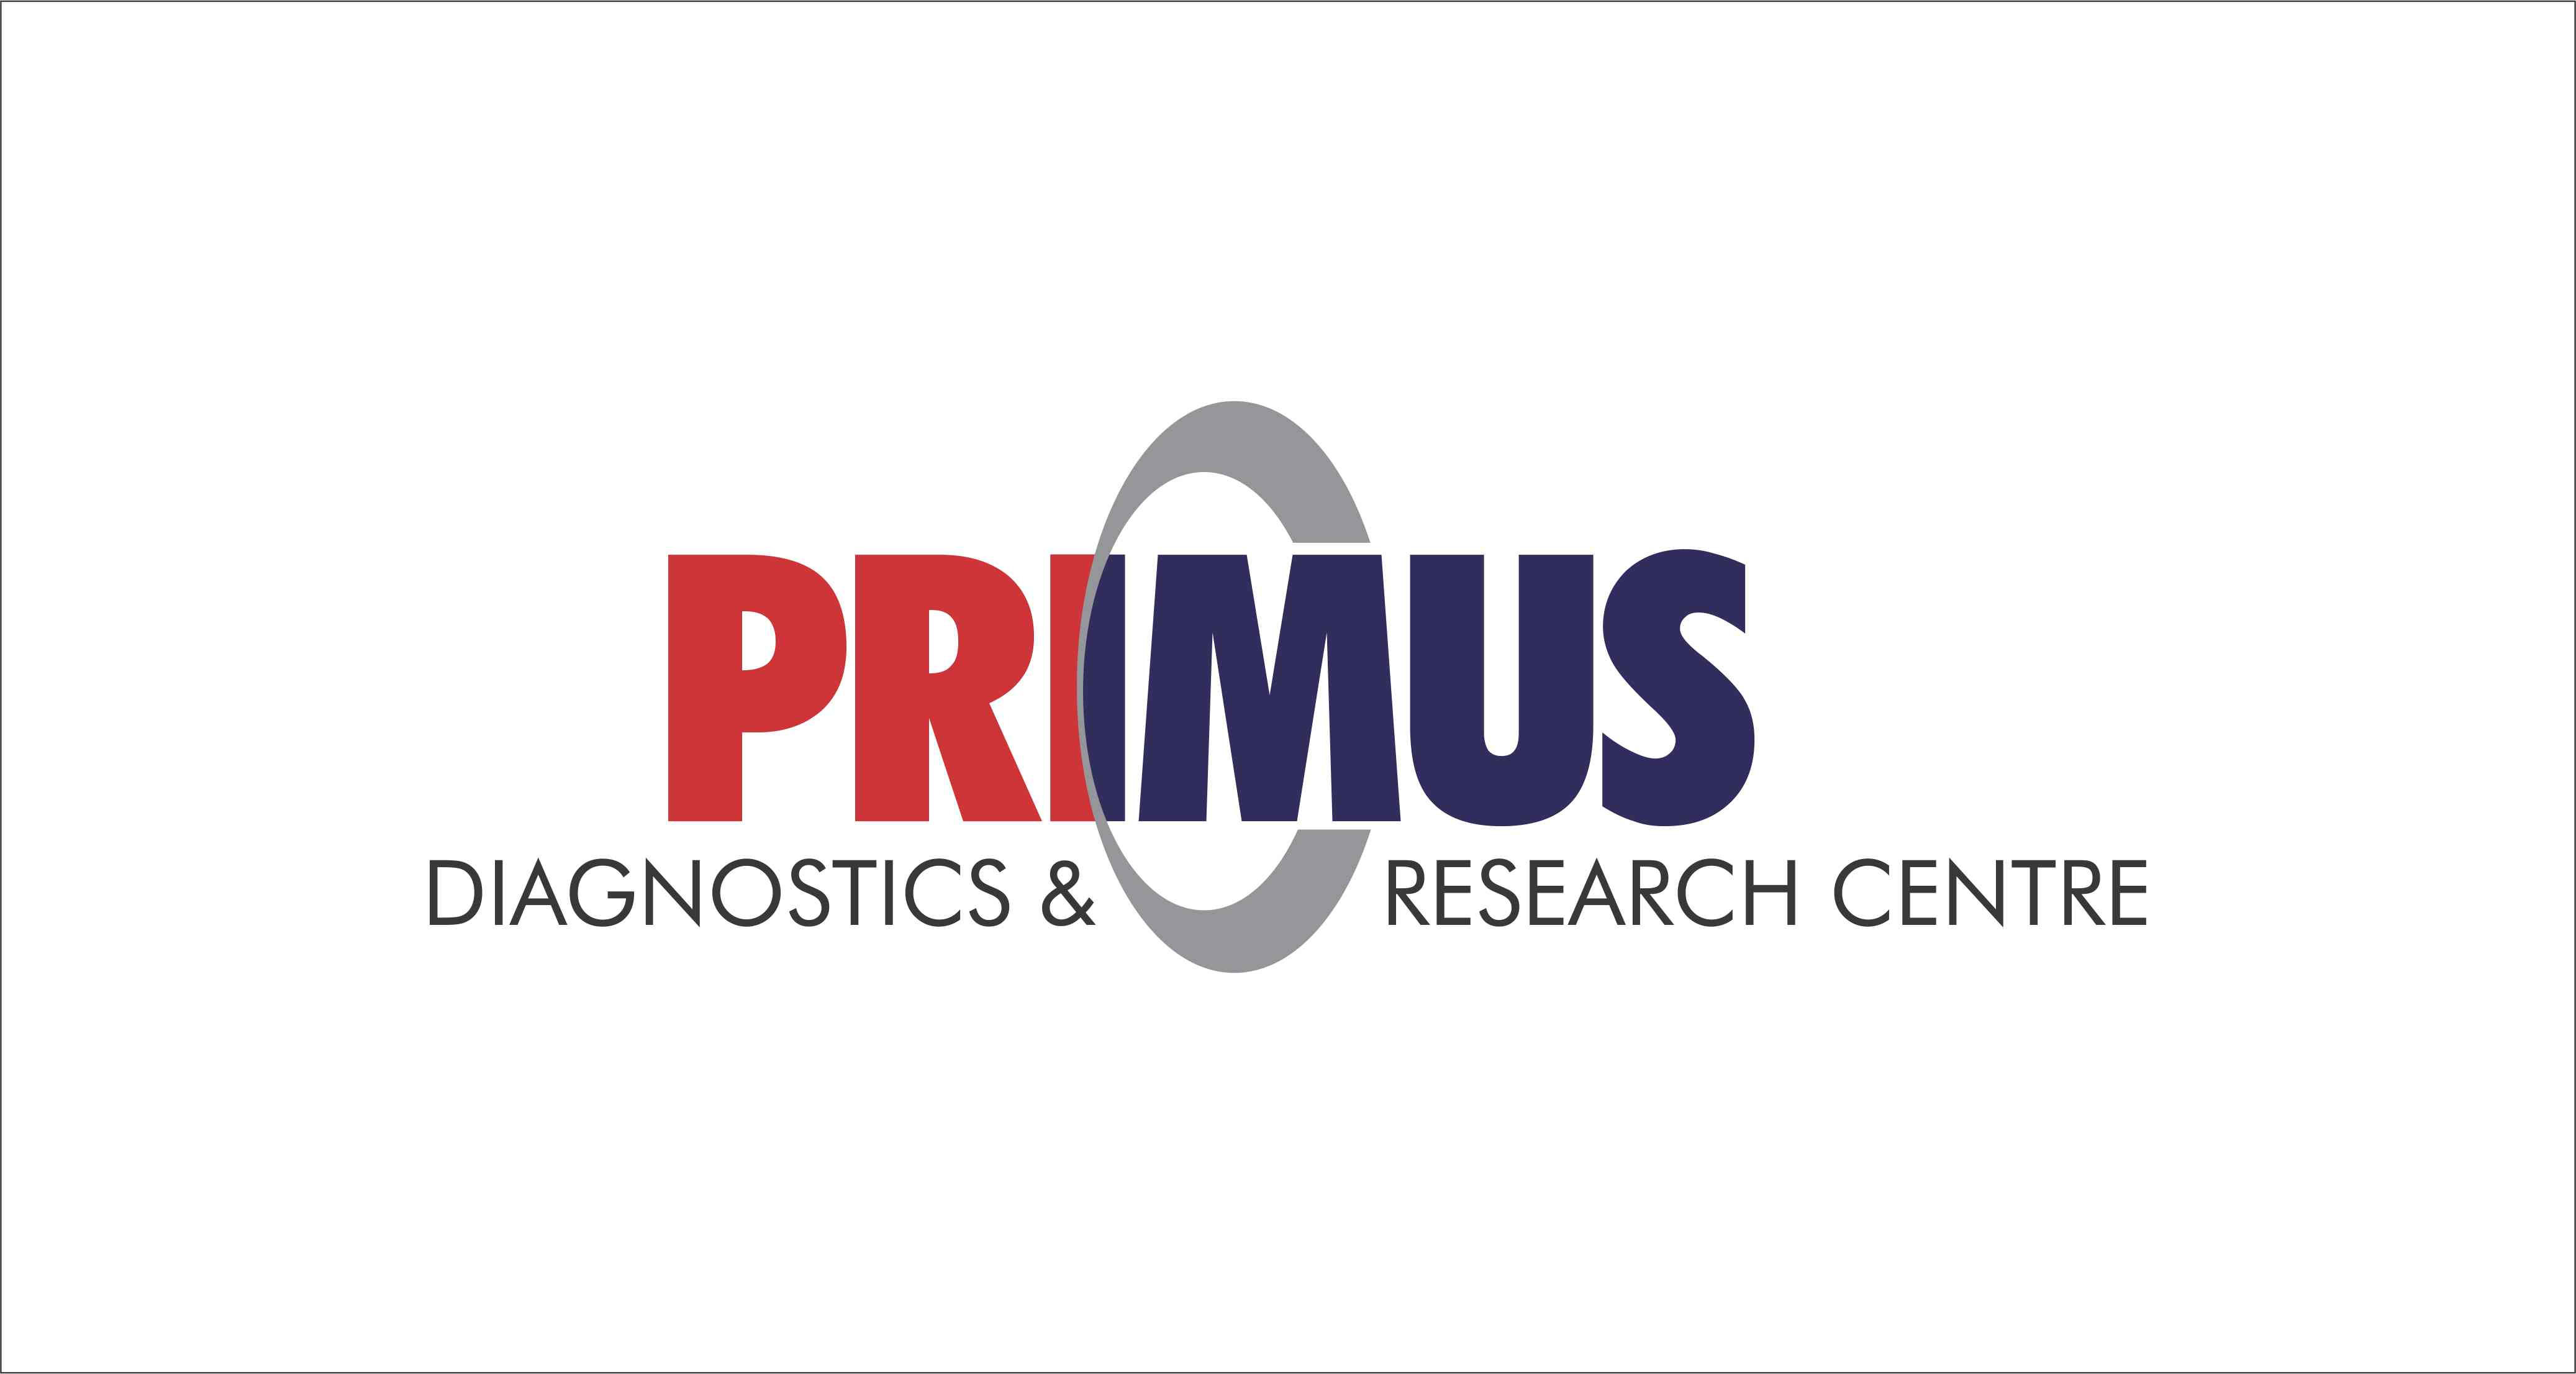 PRIMUS DIAGNOSTICS & RESEARCH CENTRE PVT LTD.